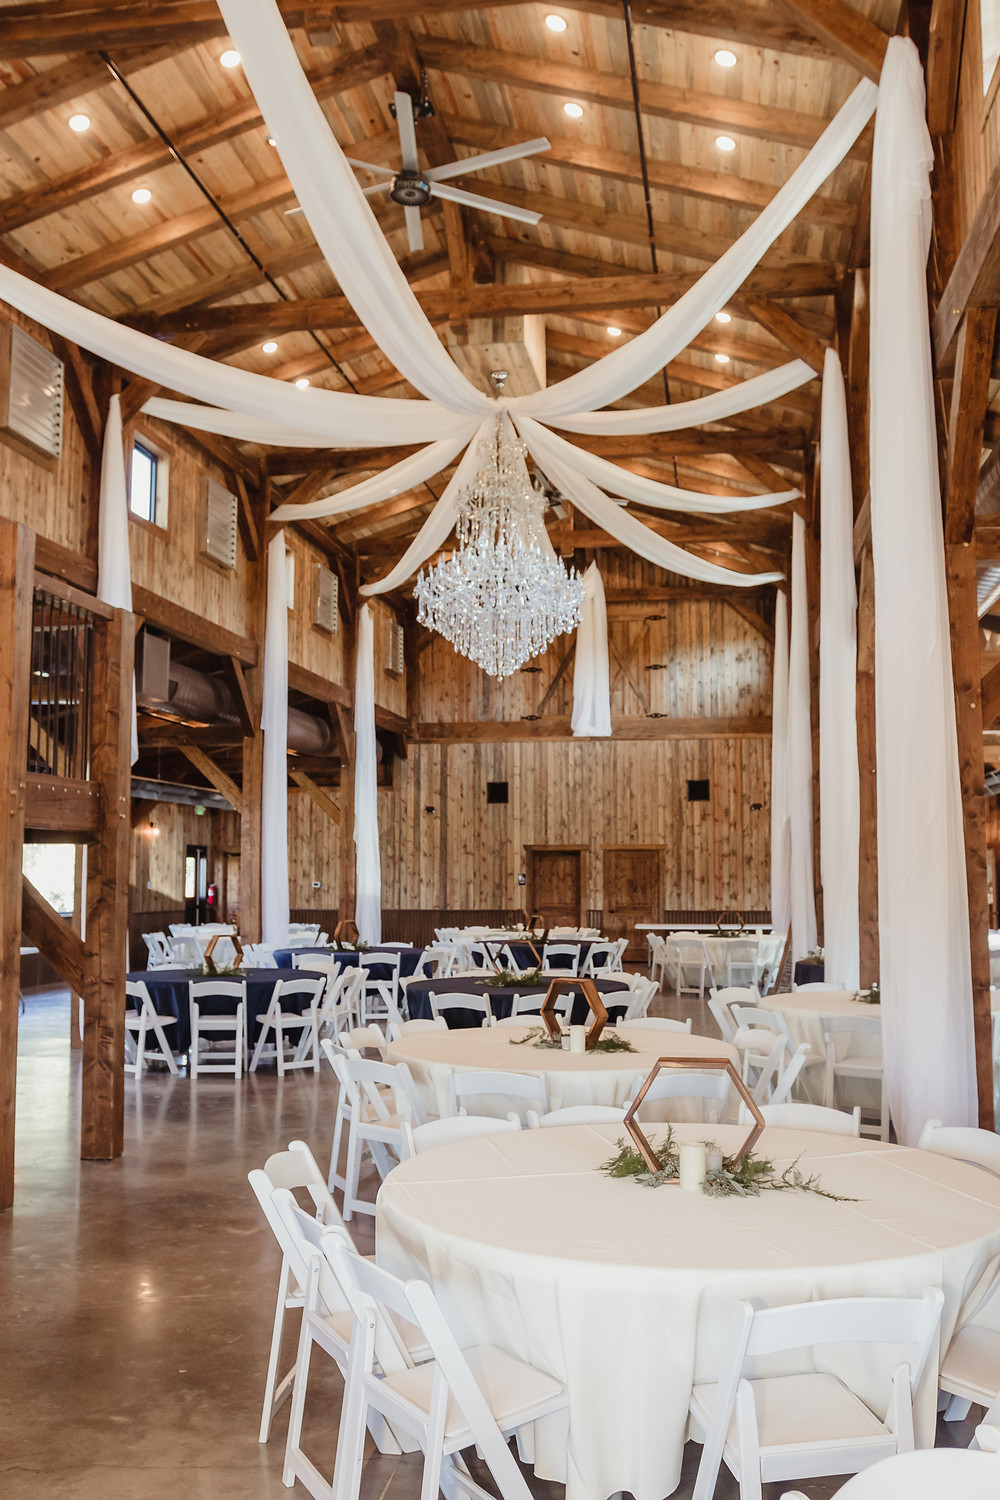 Orchard River View Palisade Colorado barn wedding venue indoor table settings chandelier drape